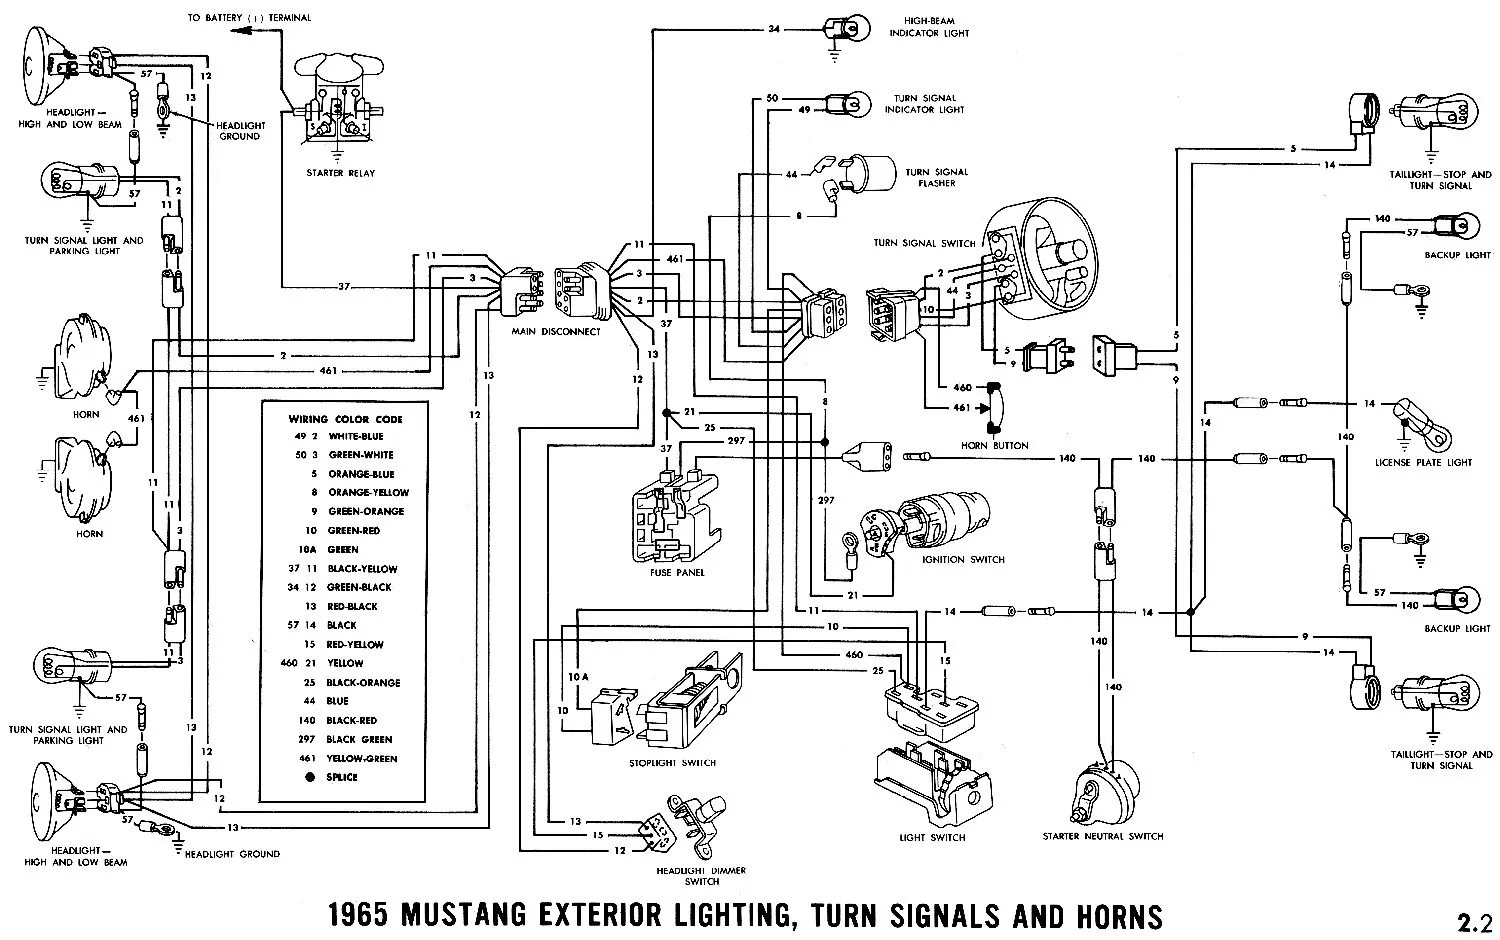 hight resolution of 1965 mustang wiring diagrams average joe restoration 89 chevy turn signal wiring 65 mustang turn signal wiring diagram